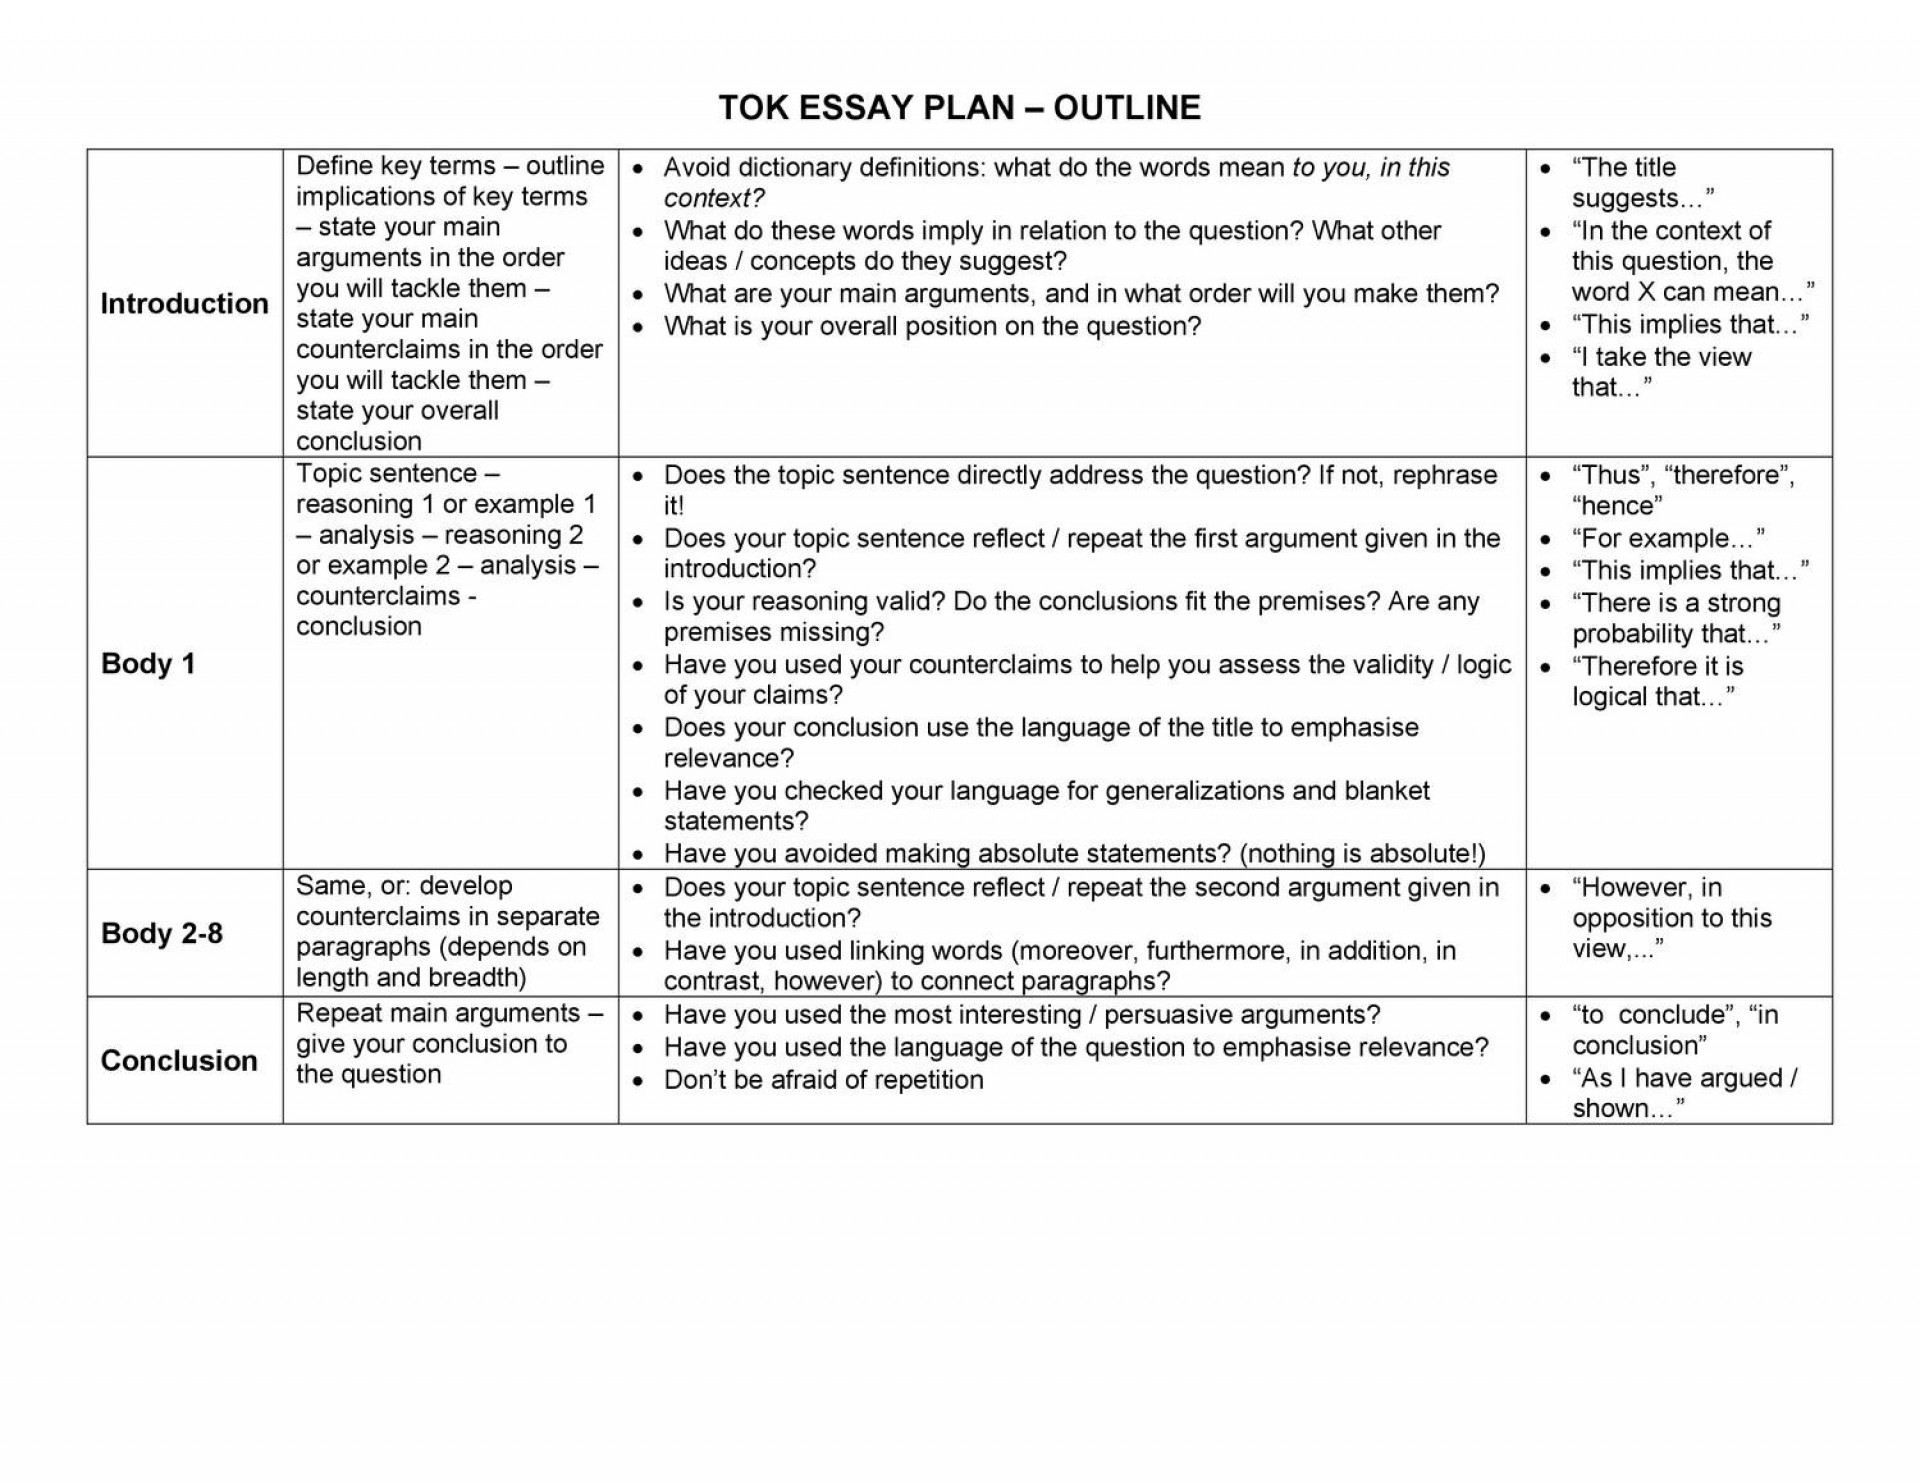 010 Essay Plan Tok Stirring Persuasive Planning Graphic Organizer Template Word Narrative Writing Organizers 1920